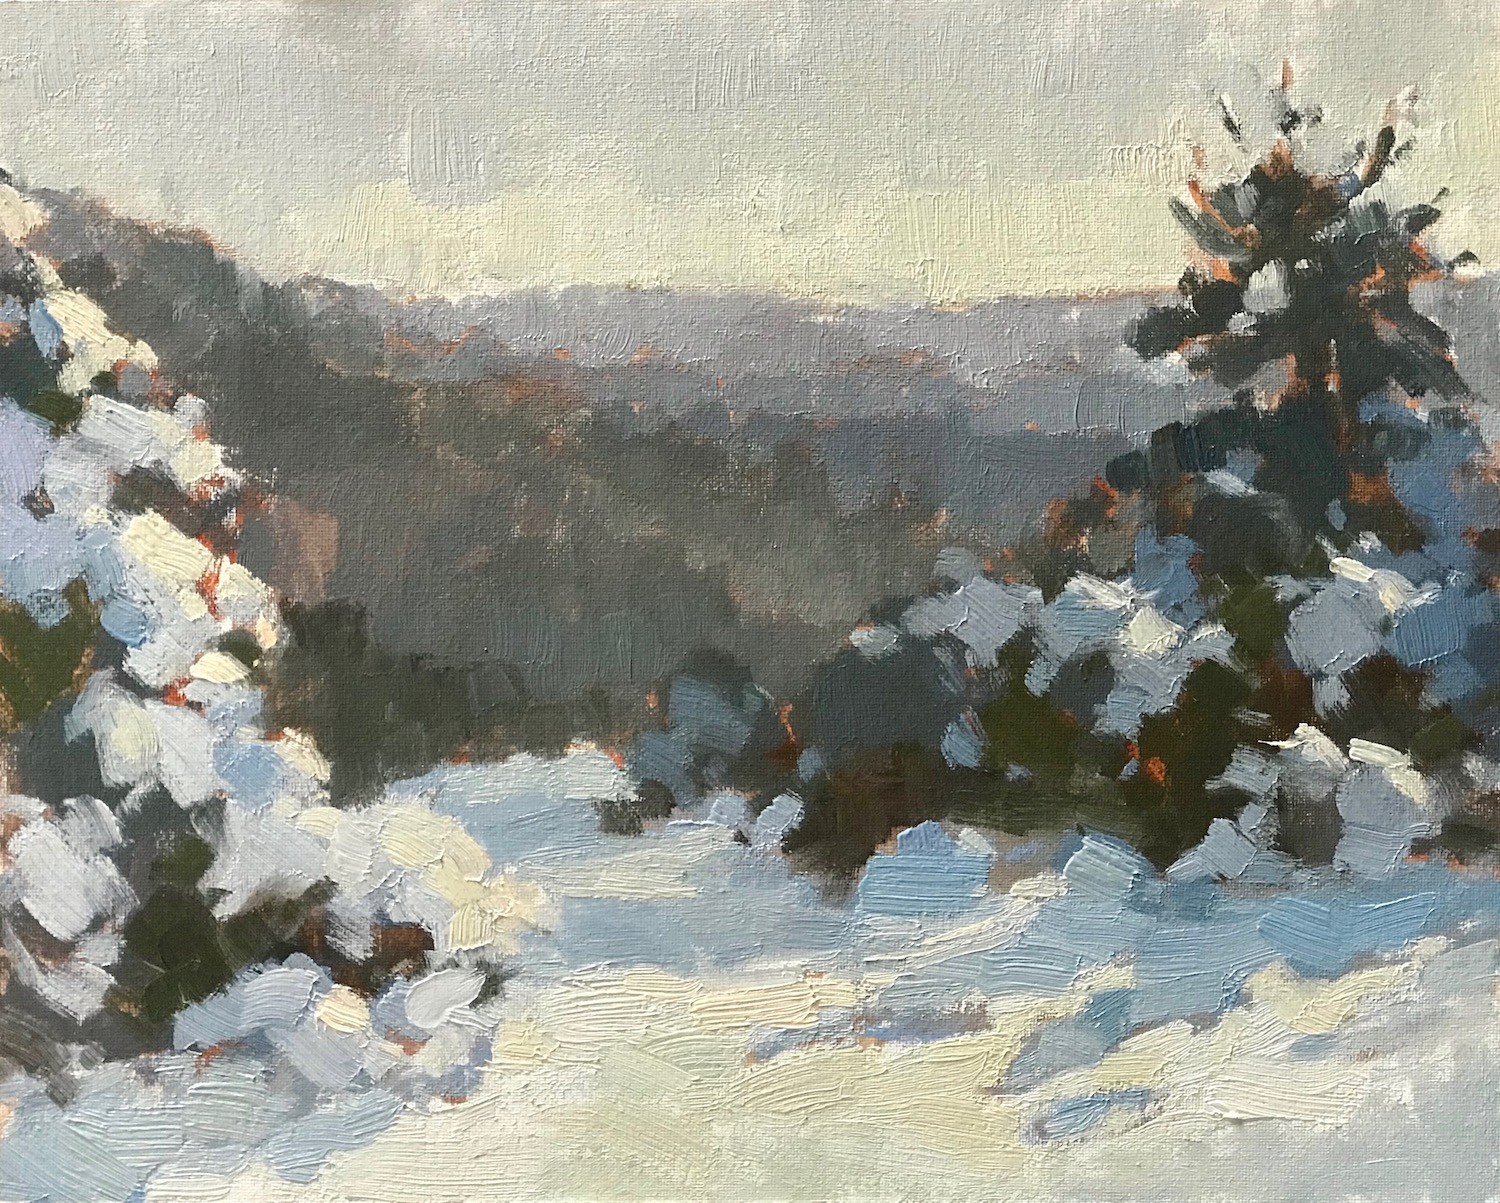 Gorse in Snow, The Punch Bowl 24x30cm